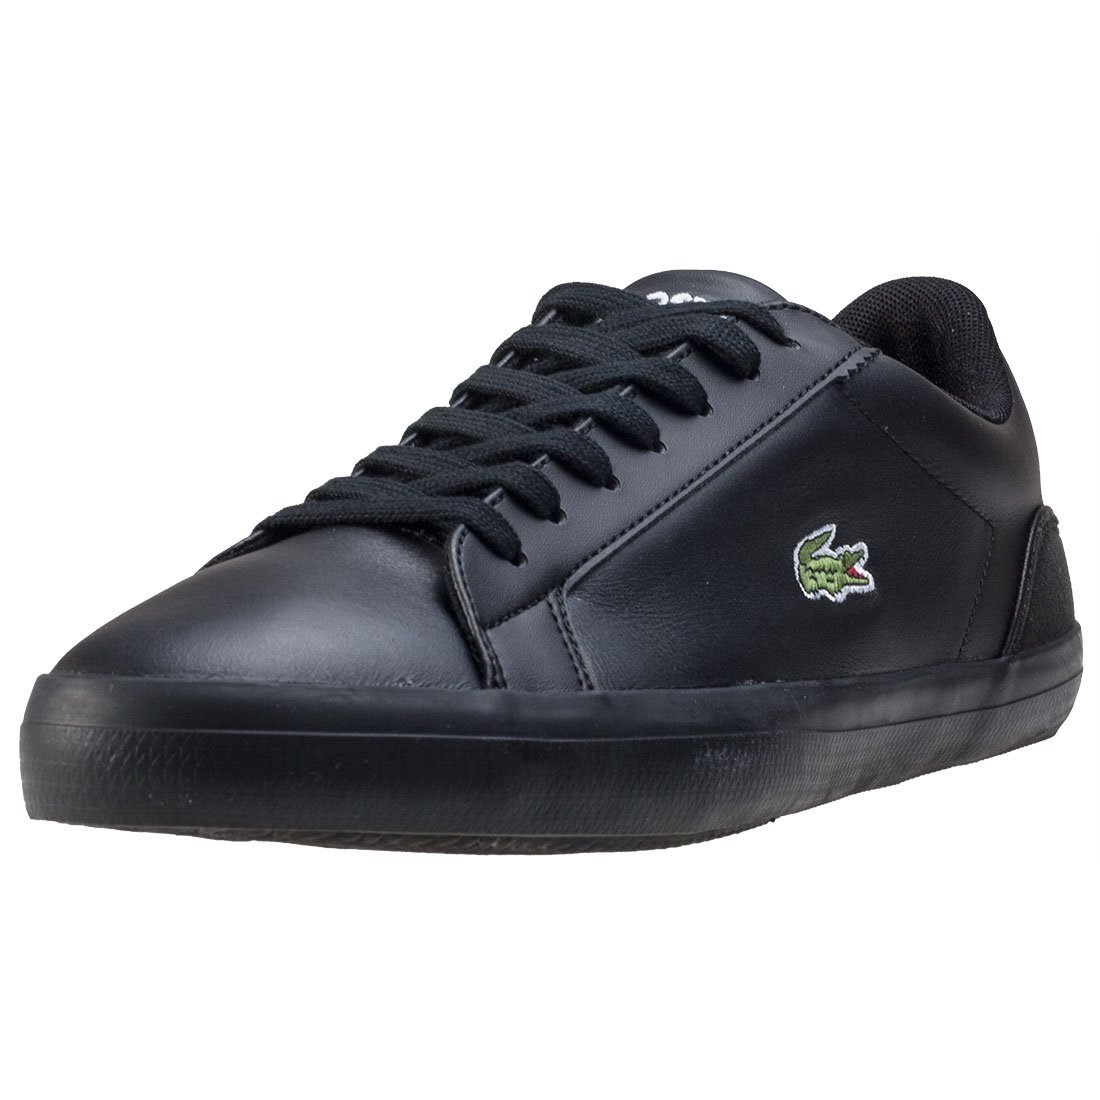 062c4b84e509 Lacoste Men s Lerond 317 1 Bass Trainers  Amazon.co.uk  Shoes   Bags